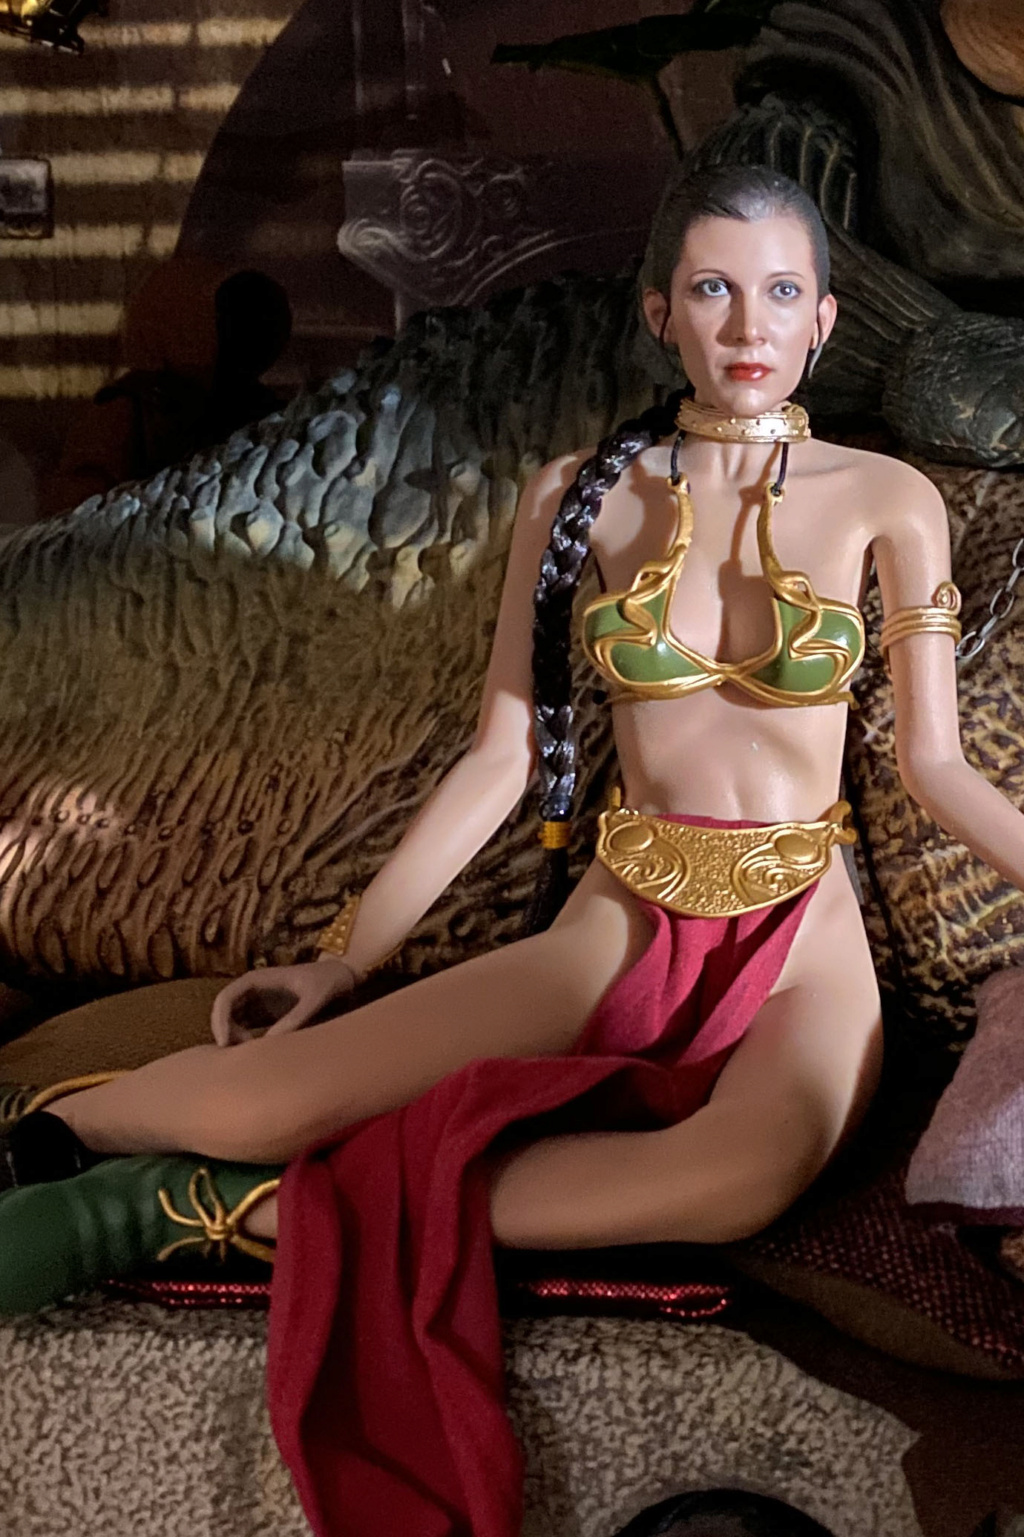 StarWars - NEW PRODUCT: HOT TOYS: STAR WARS: RETURN OF THE JEDI PRINCESS LEIA 1/6TH SCALE COLLECTIBLE FIGURE Img_8423